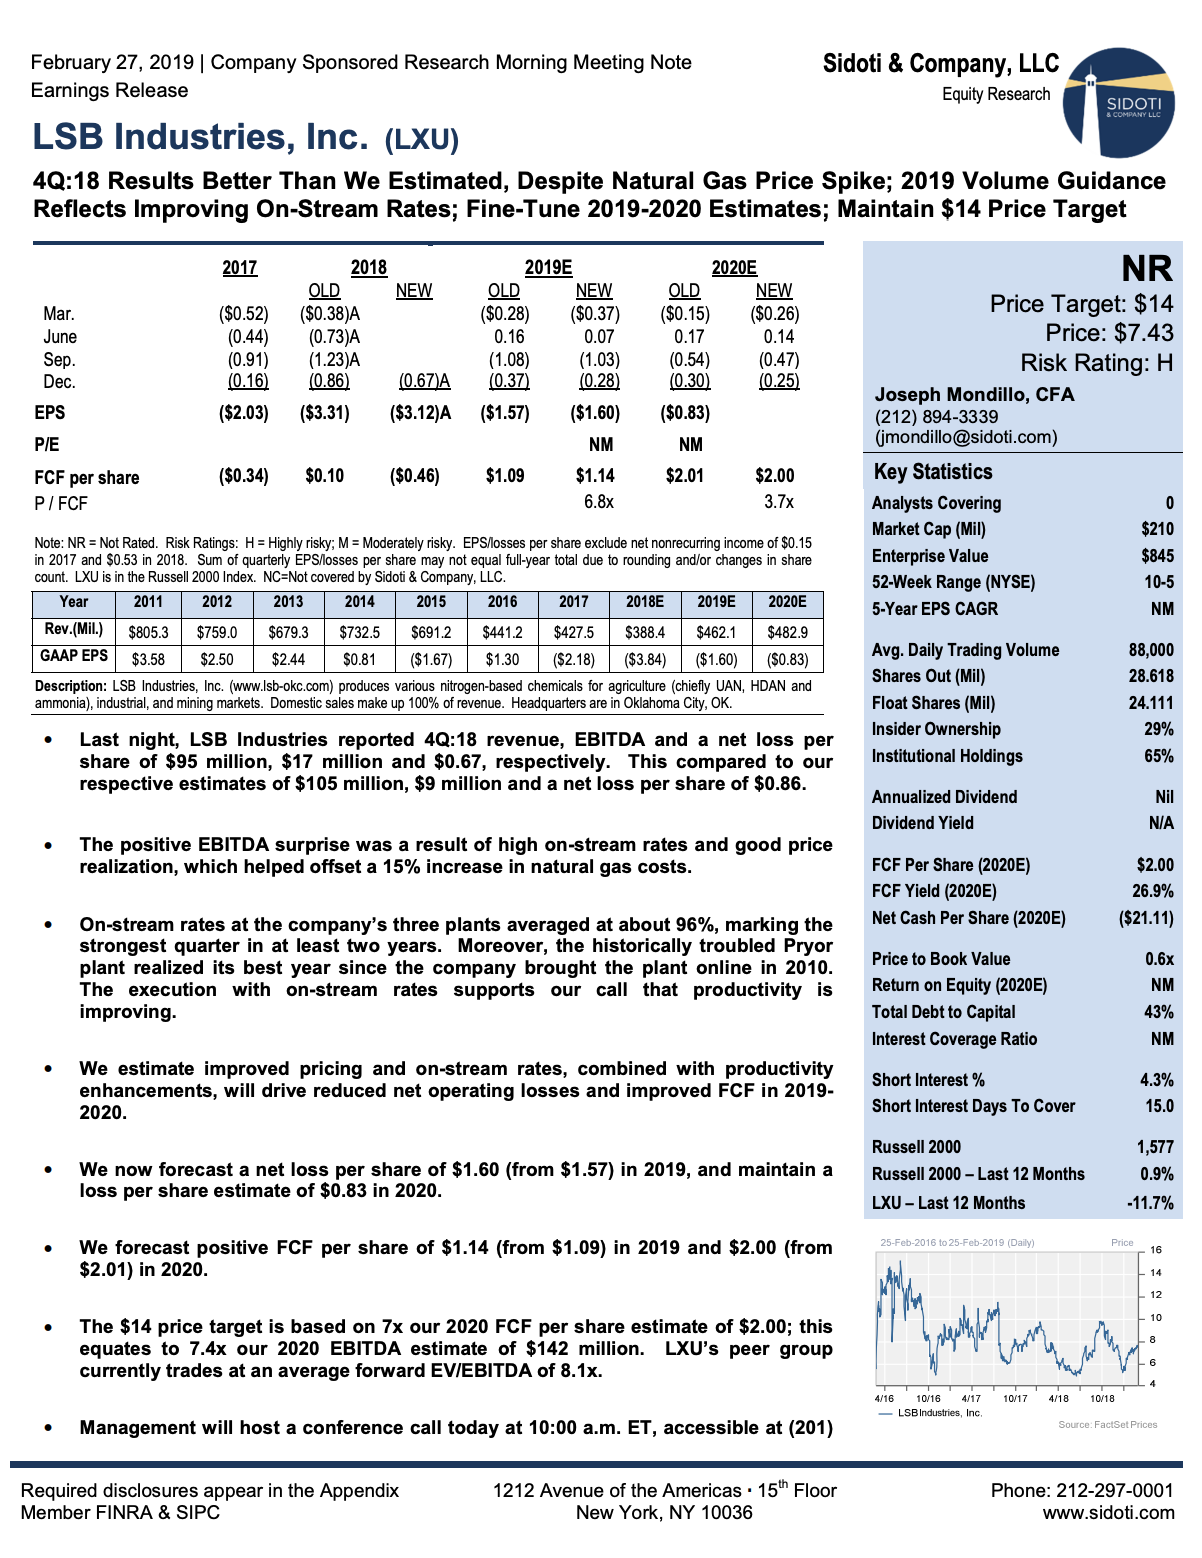 Earnings Release: February 27, 2019